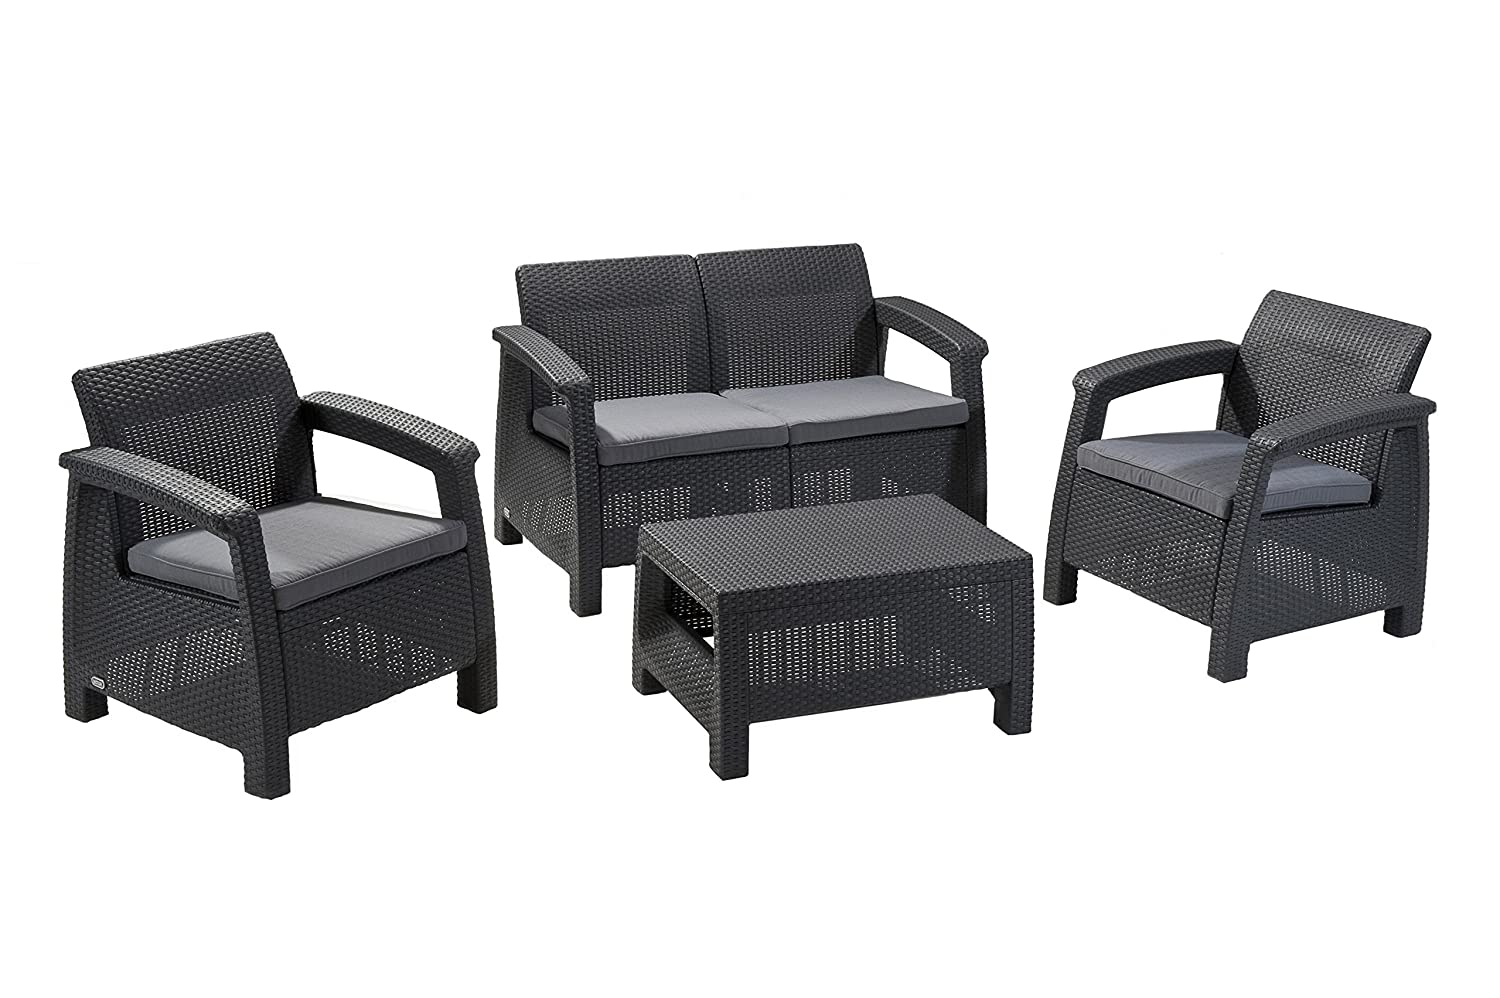 amazoncom keter corfu 4 piece set all weather outdoor patio garden furniture w cushions charcoal garden outdoor - Garden Furniture 4 All